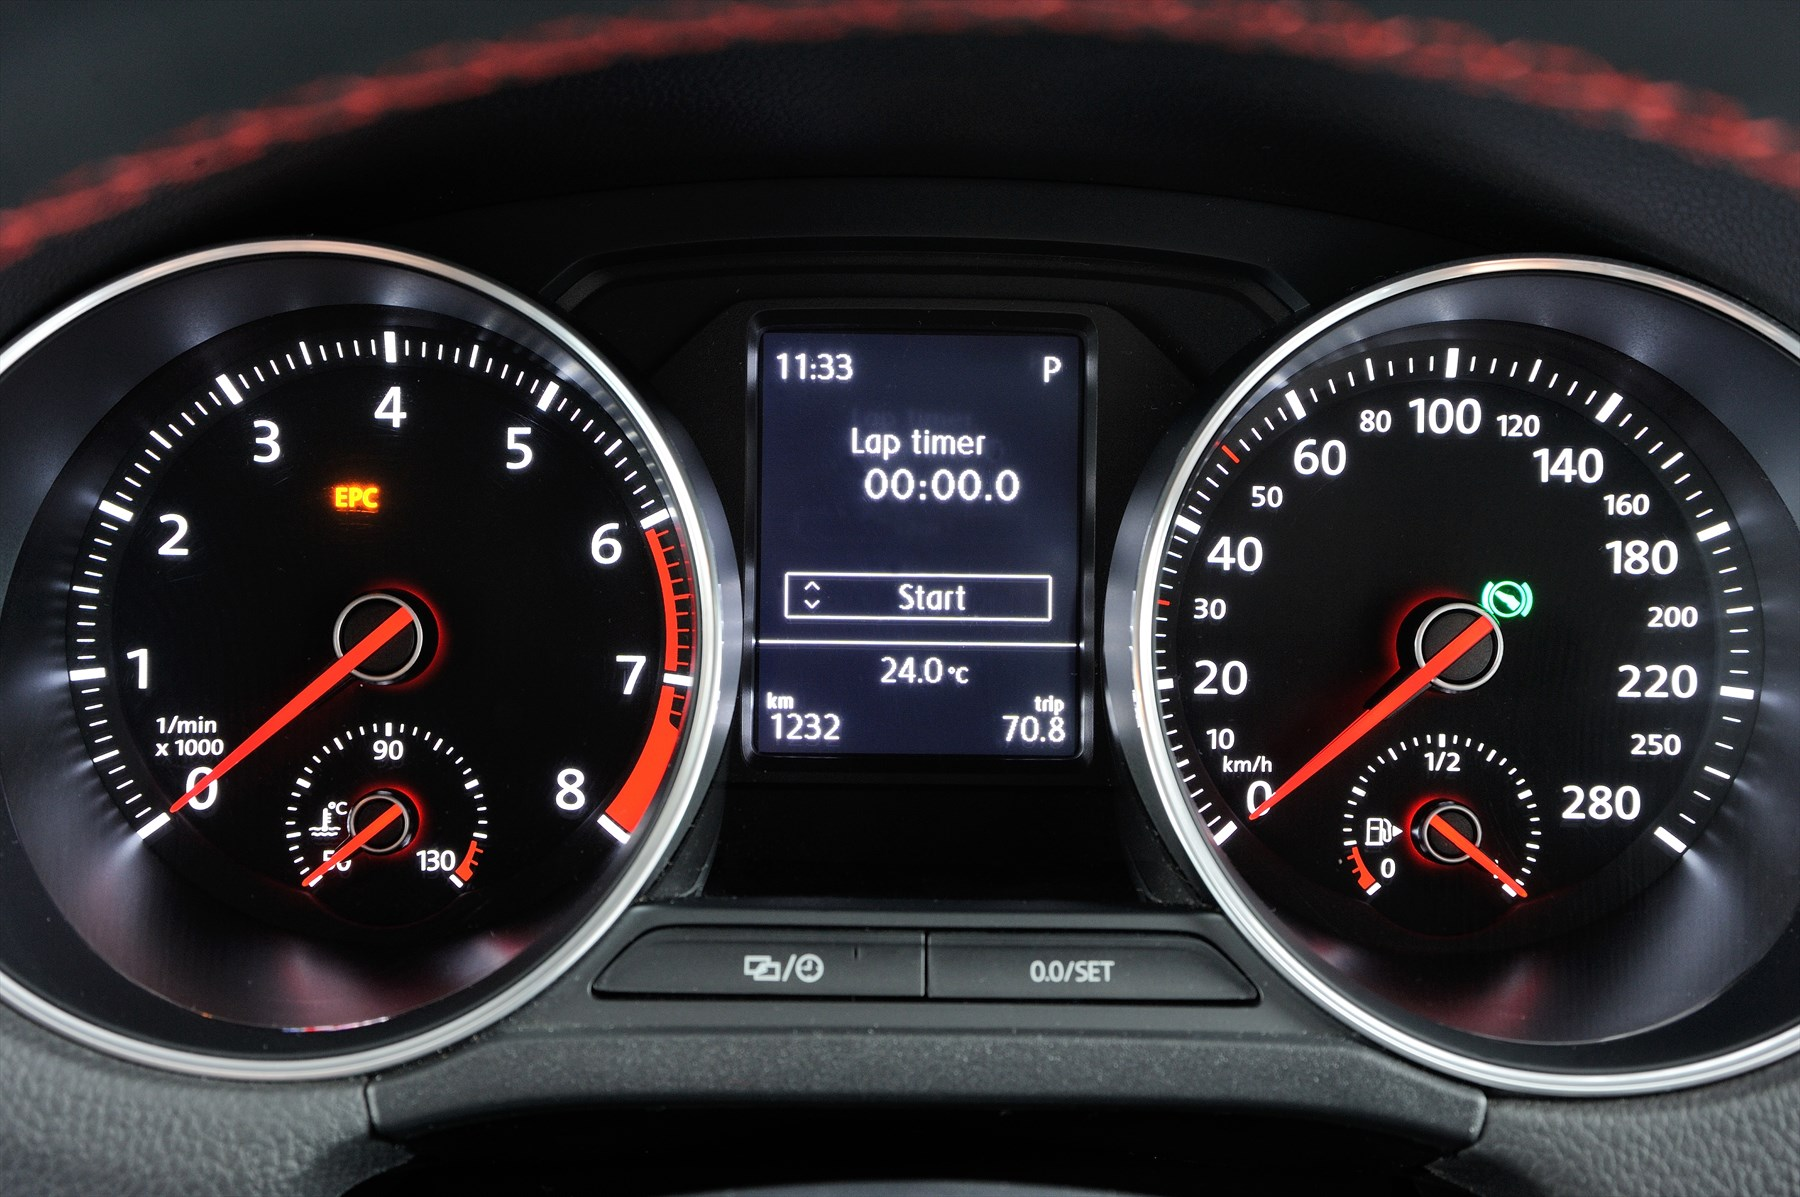 Road Test Report: Volkswagen Polo GTI | Latest News ...